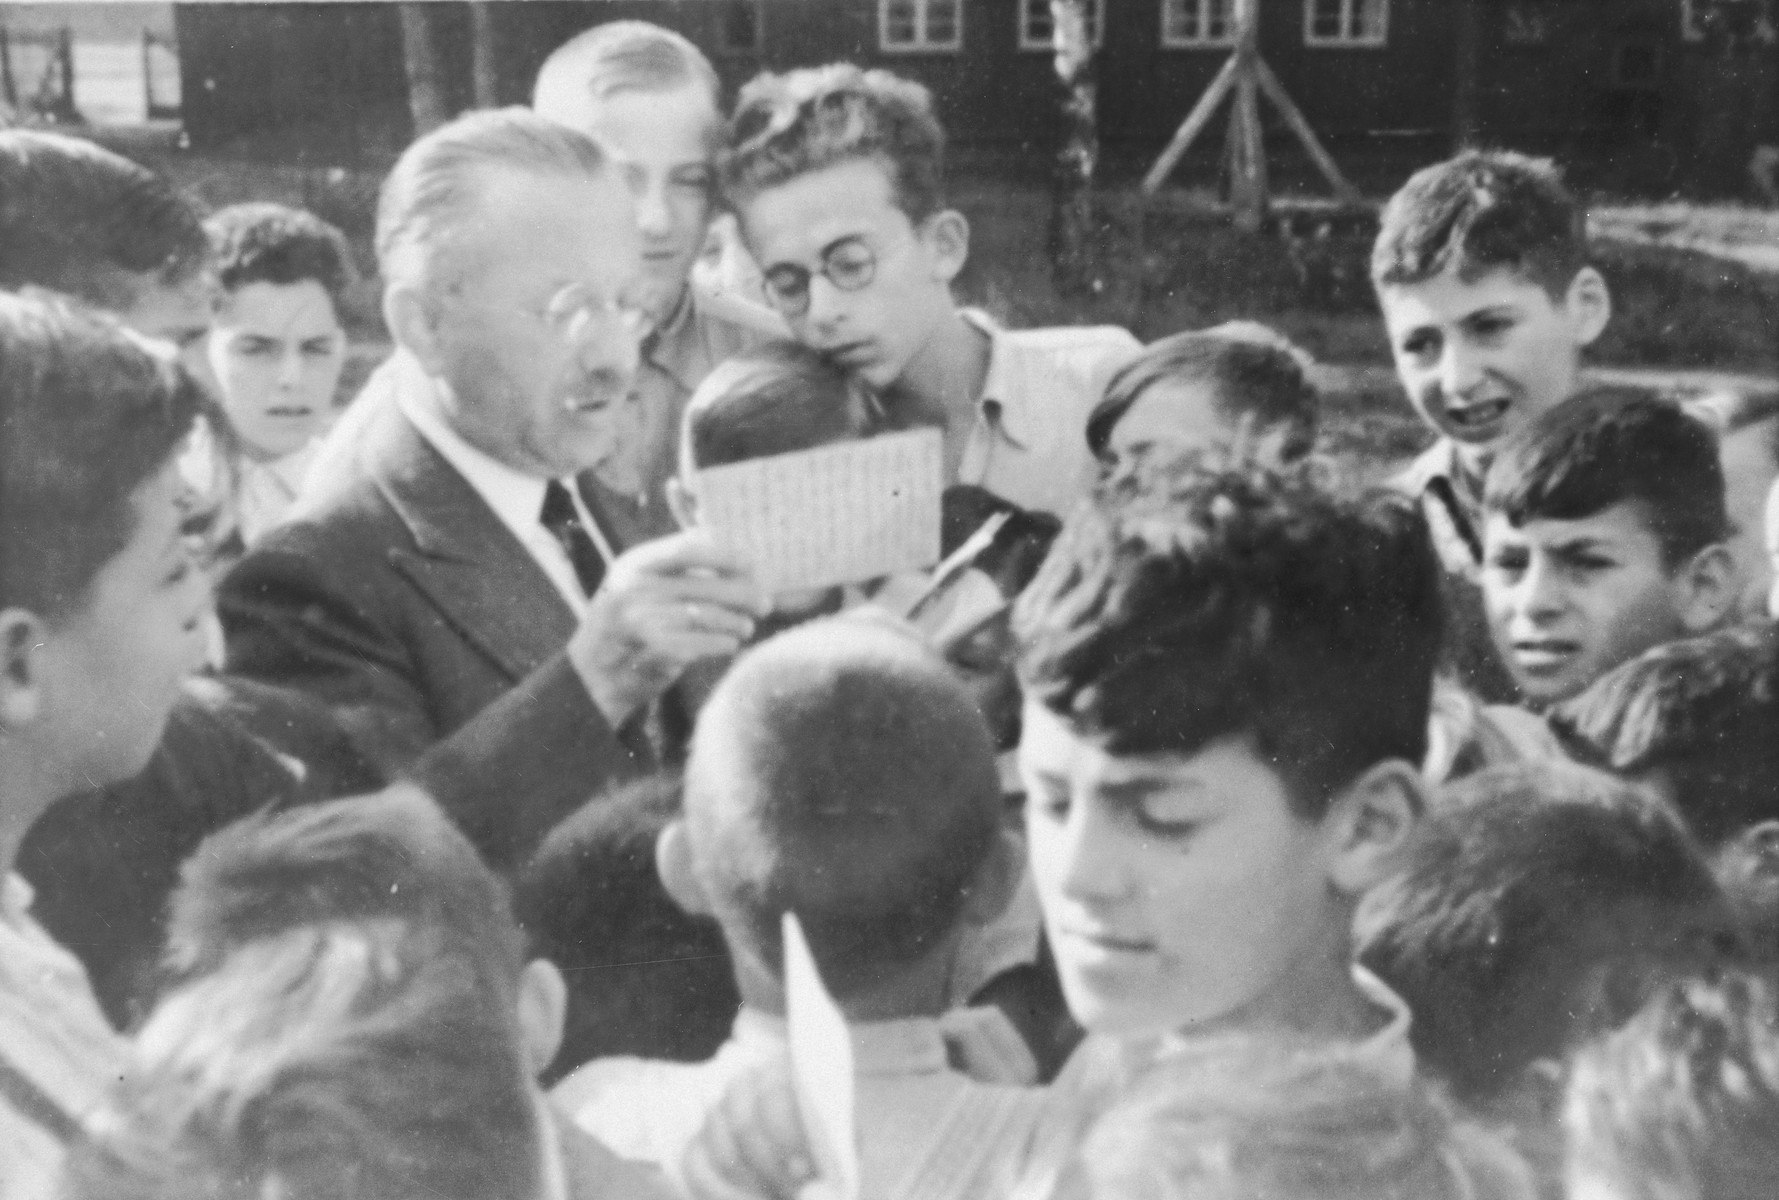 Jewish children from Germany at a Kinderlager [children's recreational summer camp] in Horserod, Denmark, gather around an elderly man who is distributing mail.   Among those pictured is Israel Loewenstien, in front, facing the camera while reading a letter.  In 1935-36 Norbert Wollheim was involved in organizing groups of German Jewish youth to attend a summer camp in Denmark.